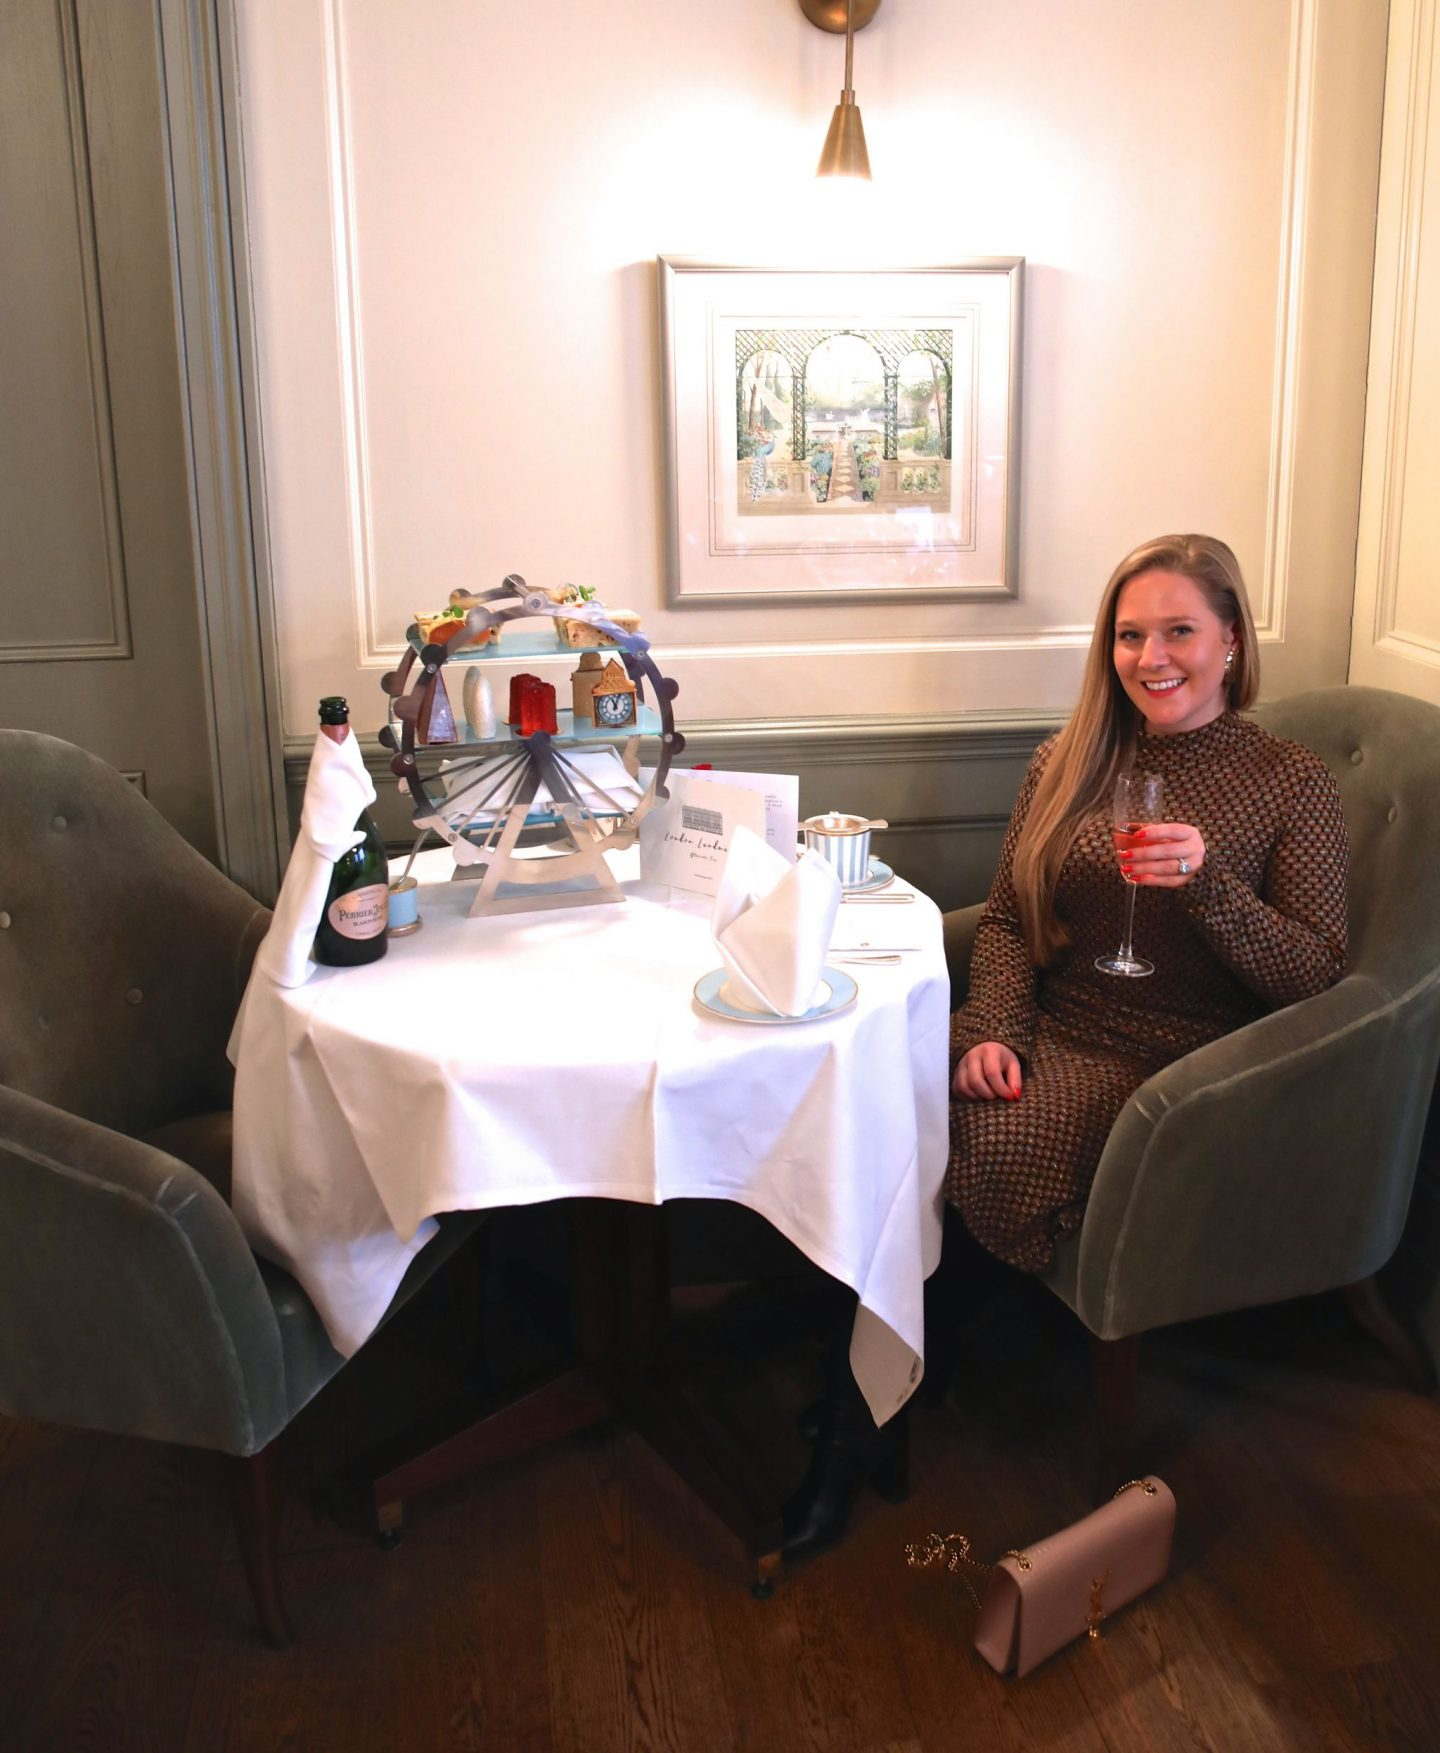 The Kensington Townhouse's London Landmarks Afternoon Tea